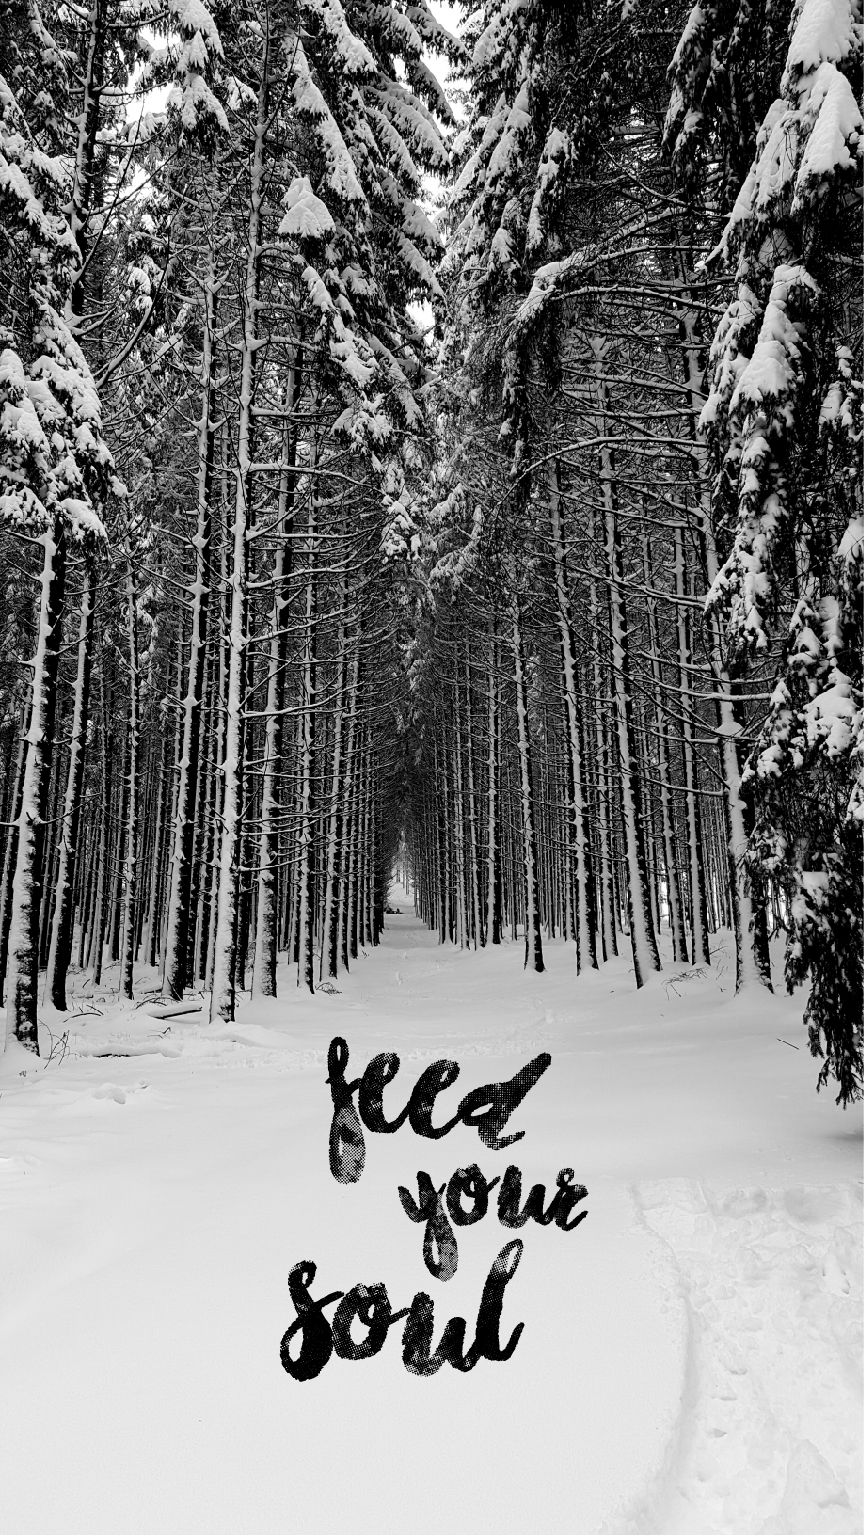 Feed your soul nature quotes forest black white photography